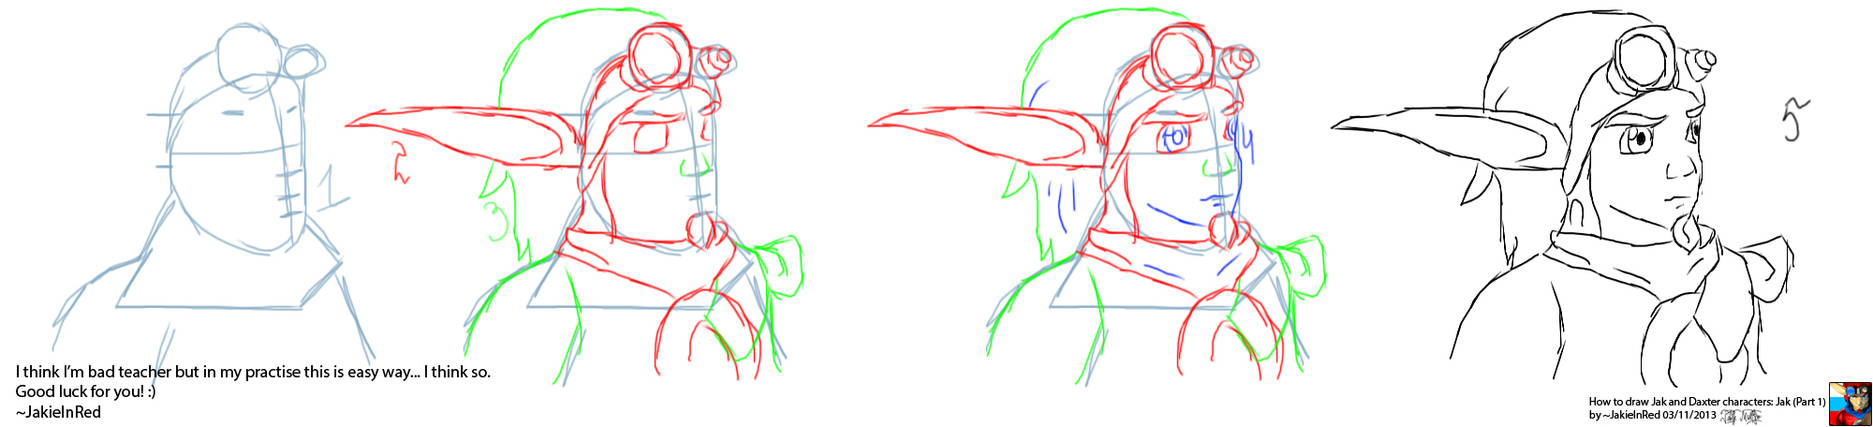 How to draw JxD characters: Jak (Part 1)